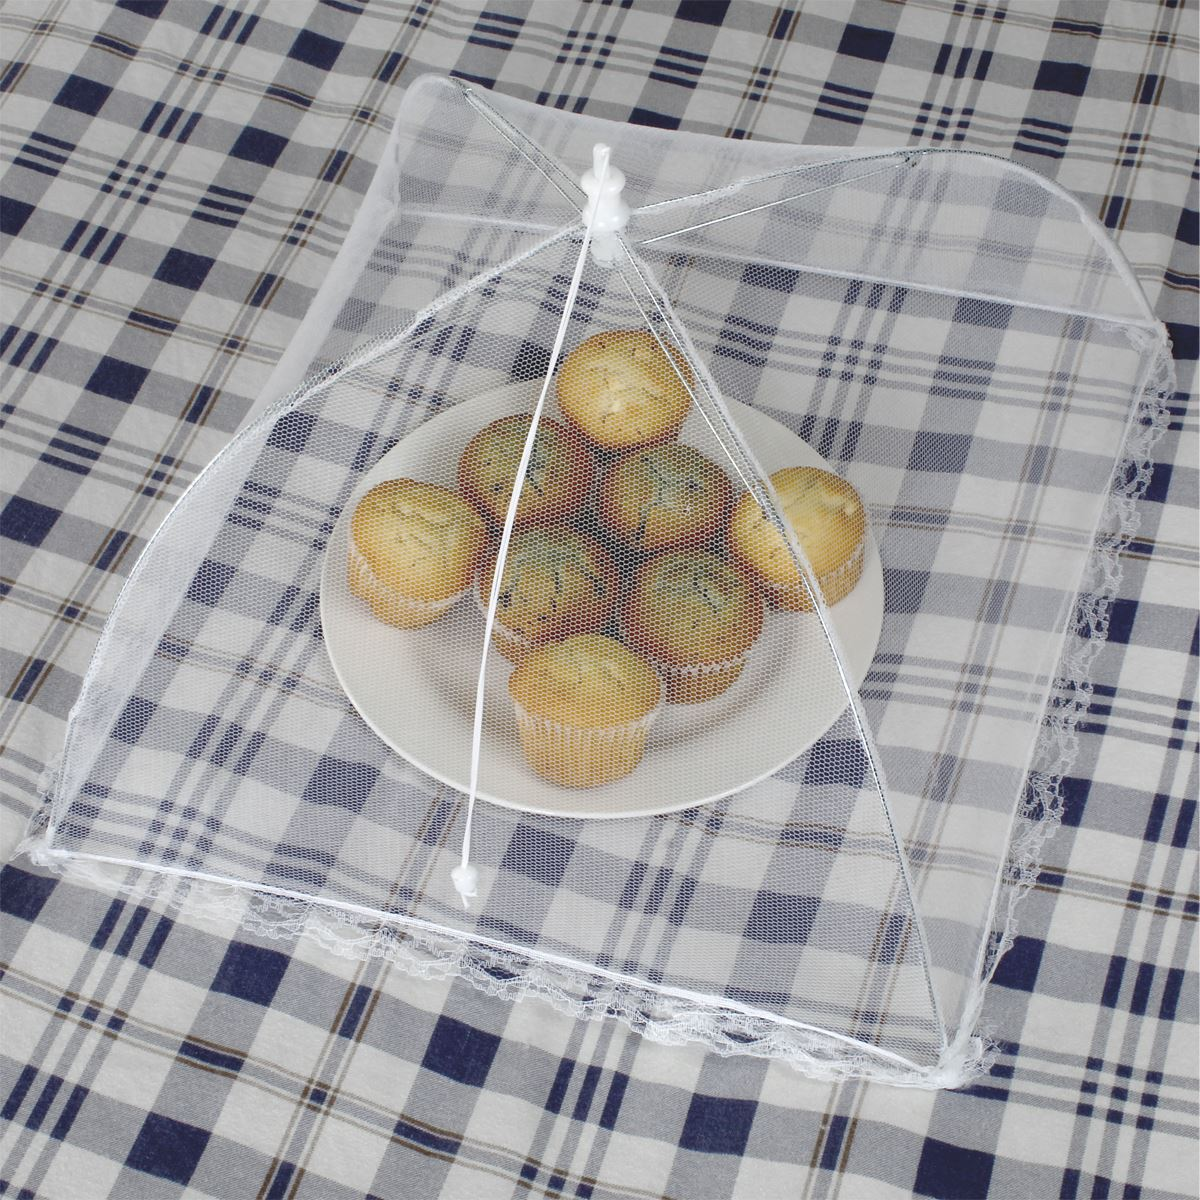 Reusable-Pop-up-Mesh-Screen-Dome-Food-Cover-Tent-Umbrella-Net-BBQ-Table-Fly thumbnail 5